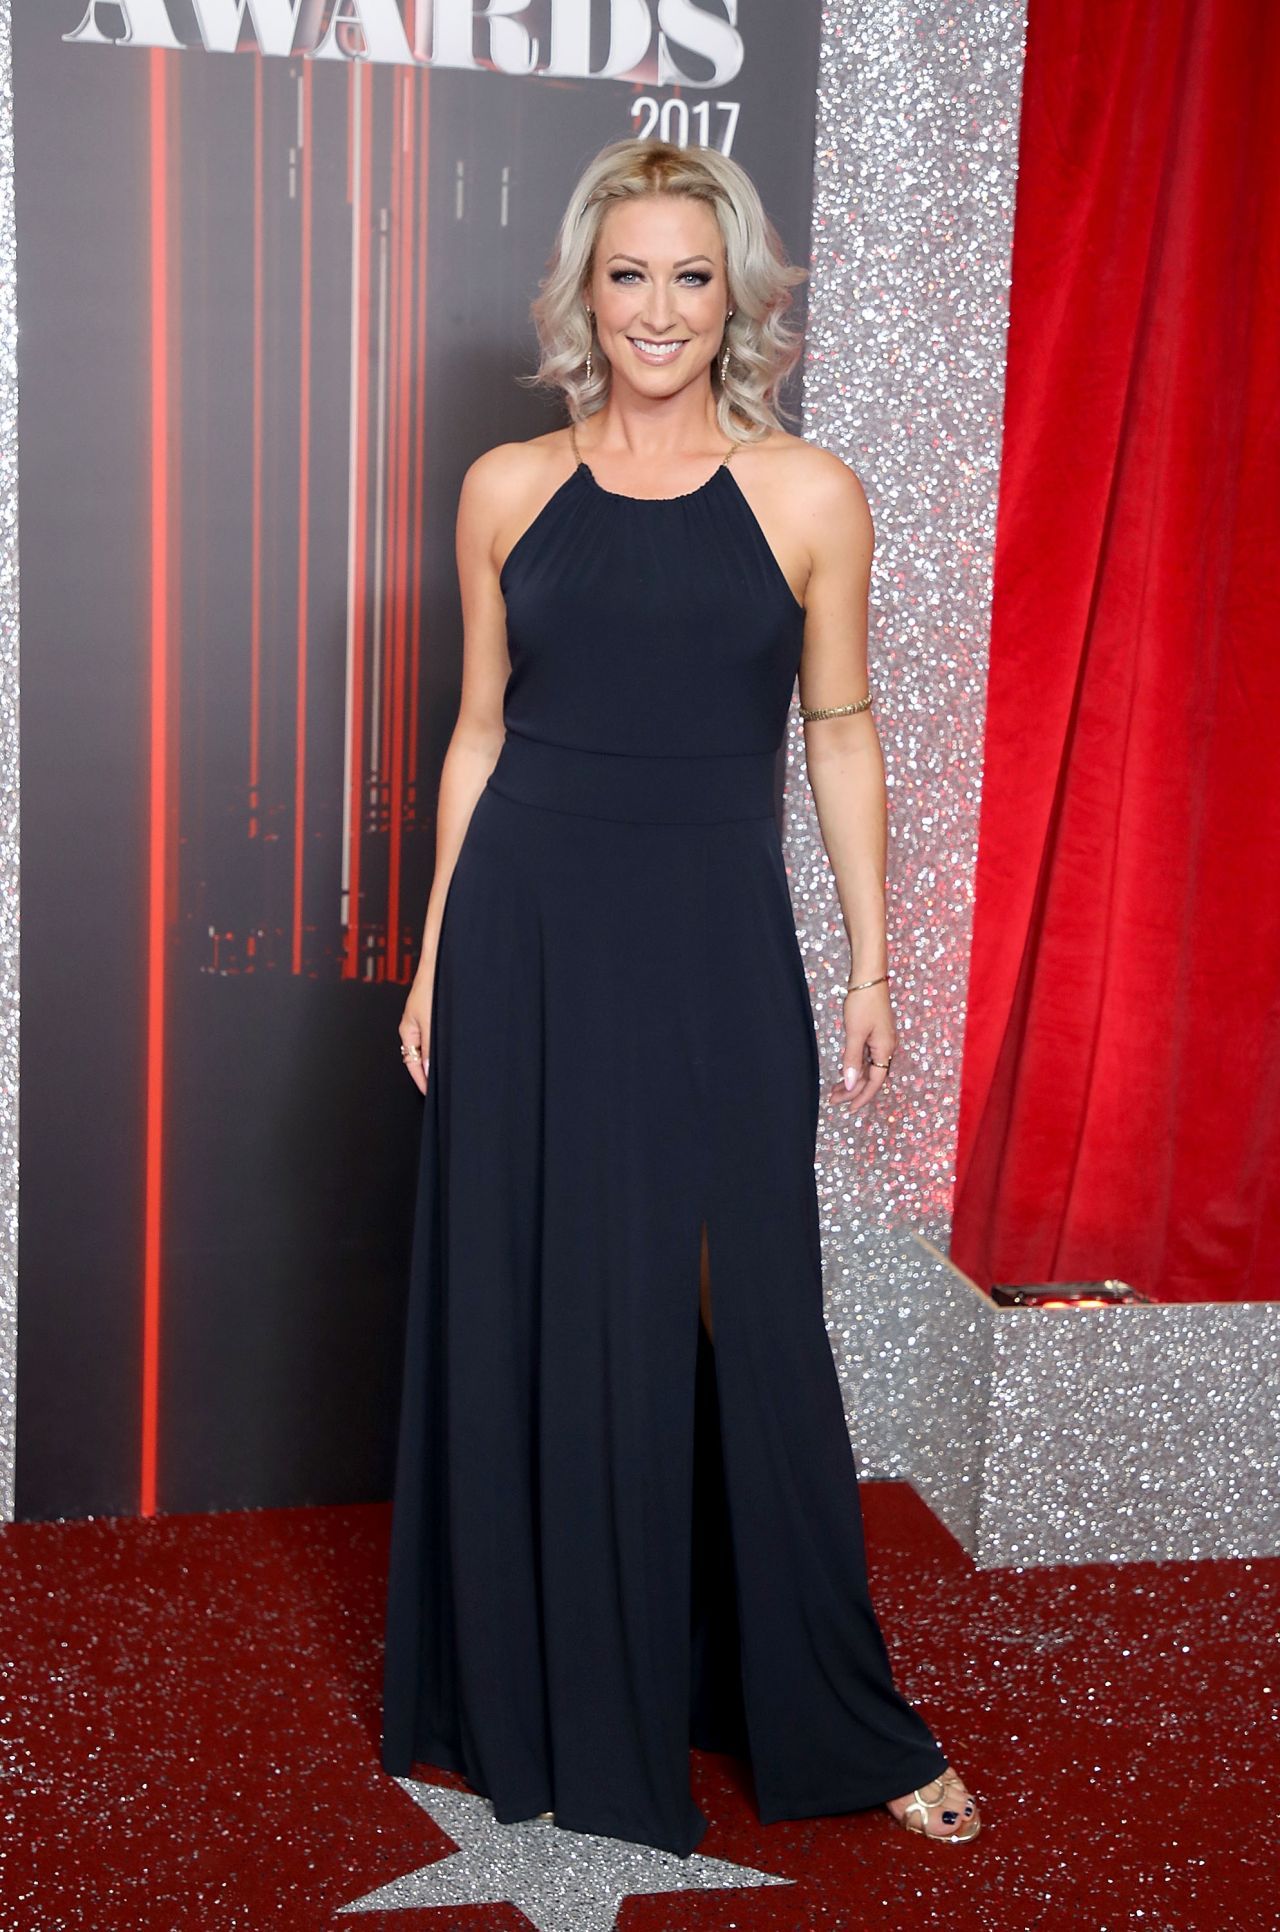 British Soap Awards In Manchester, UK 06/03/2017